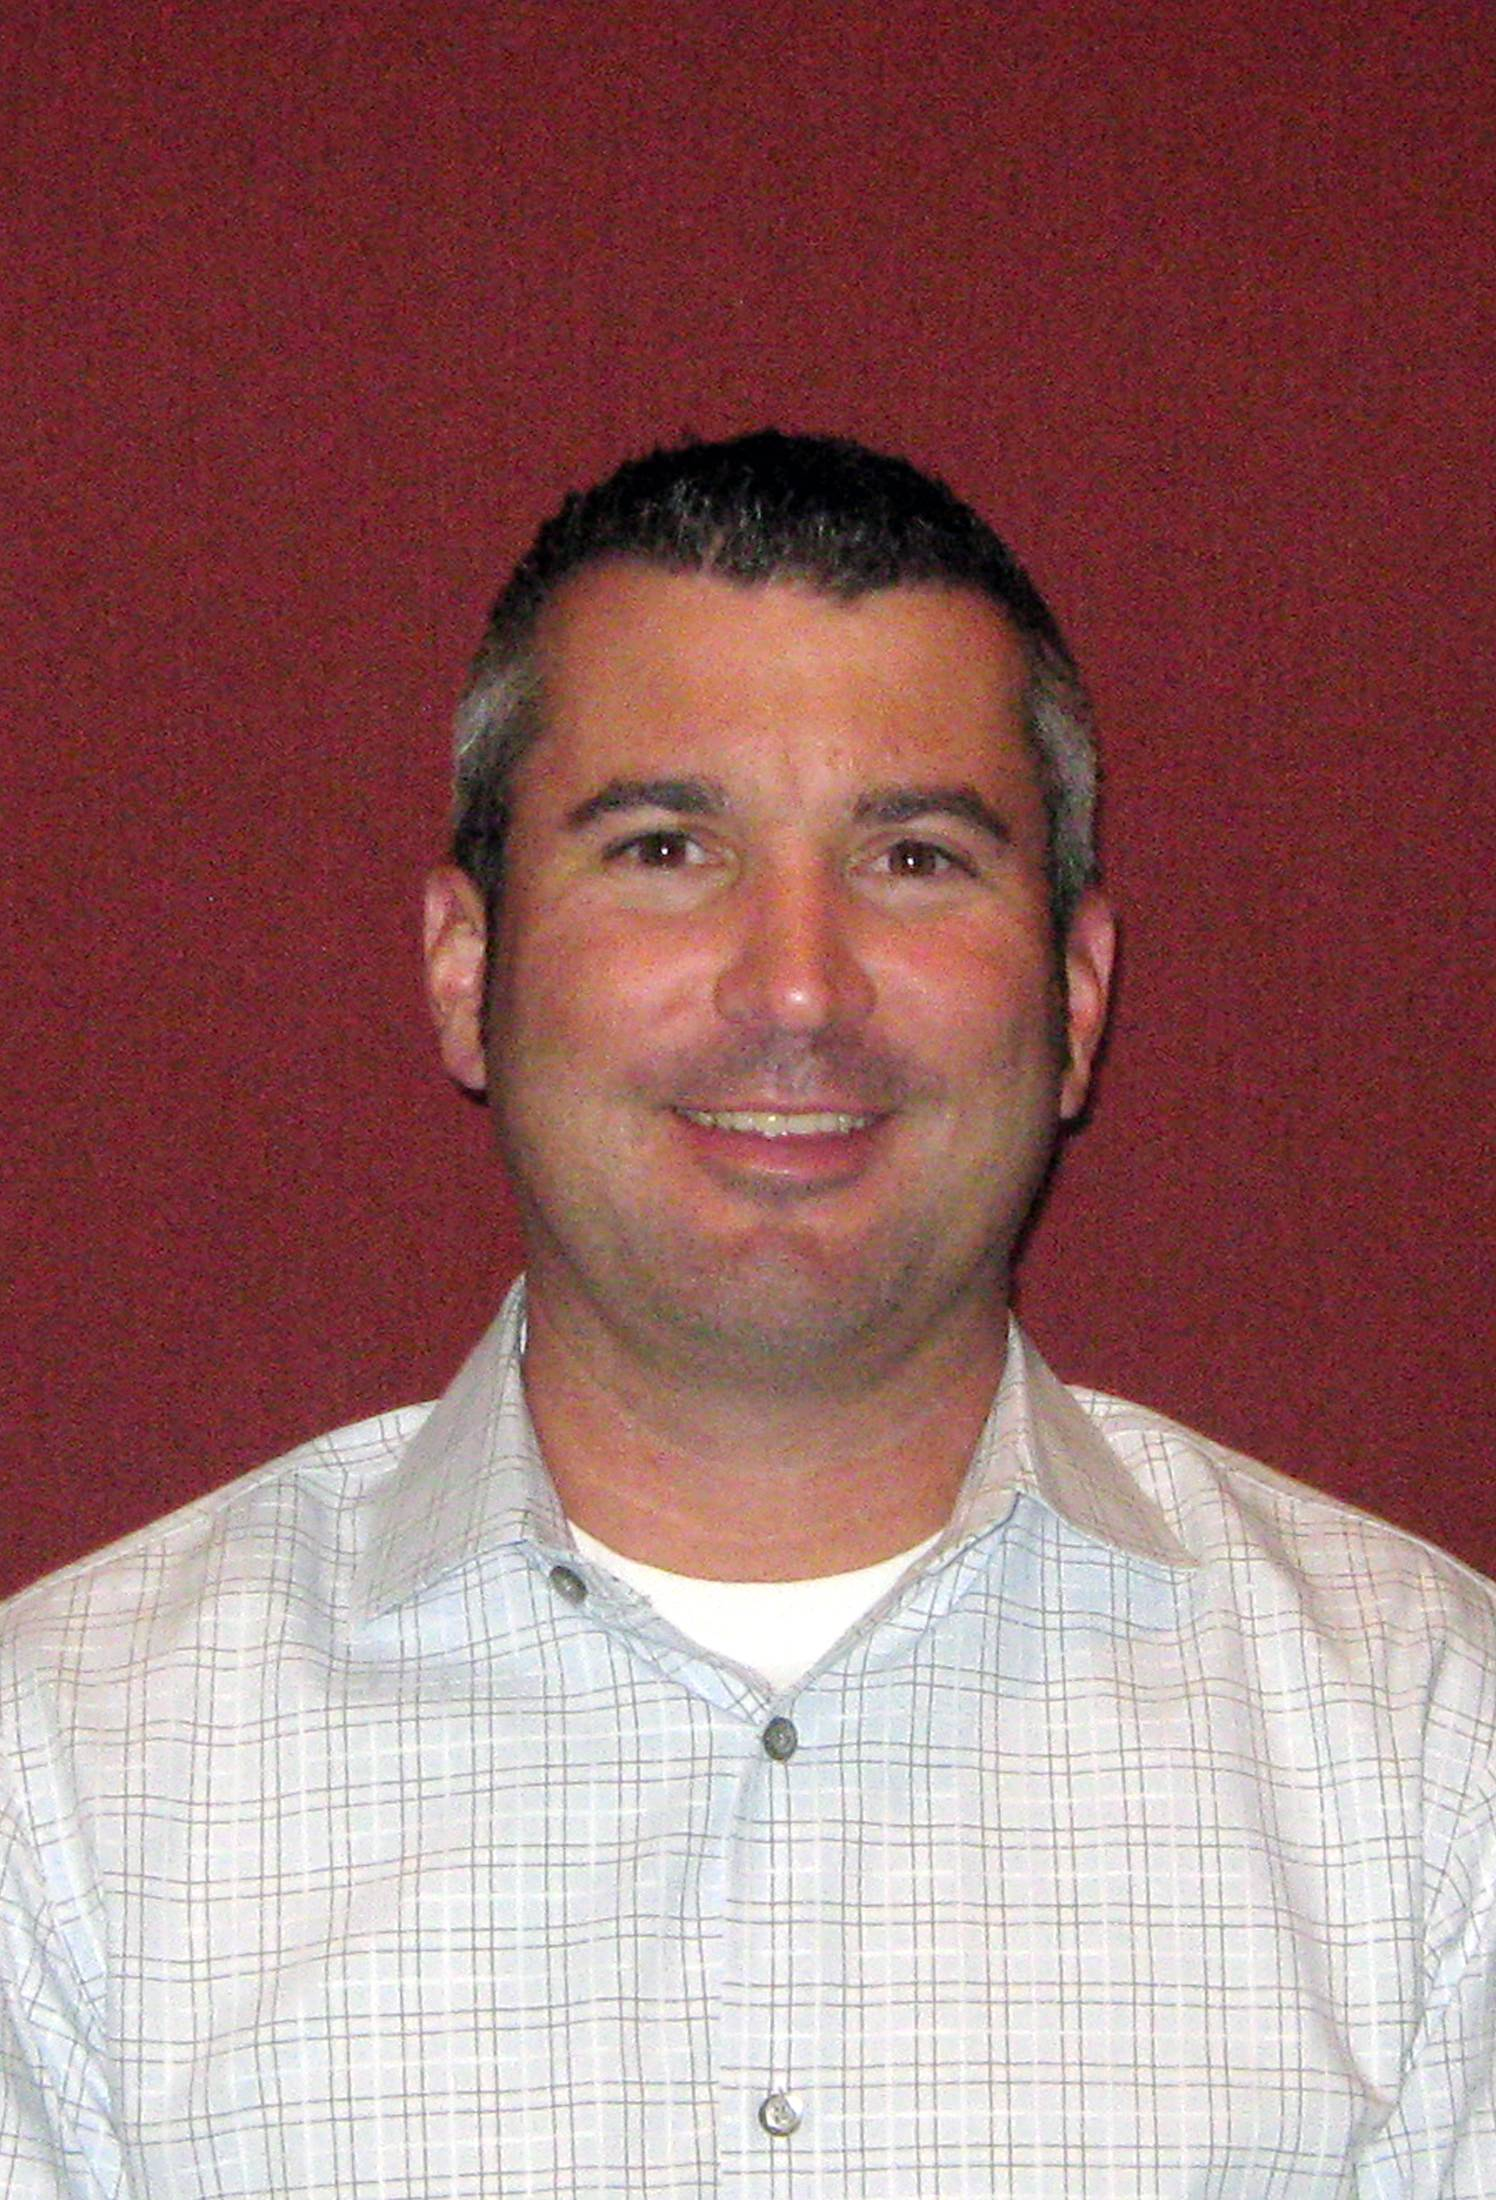 Dan Babcock, manager of business development